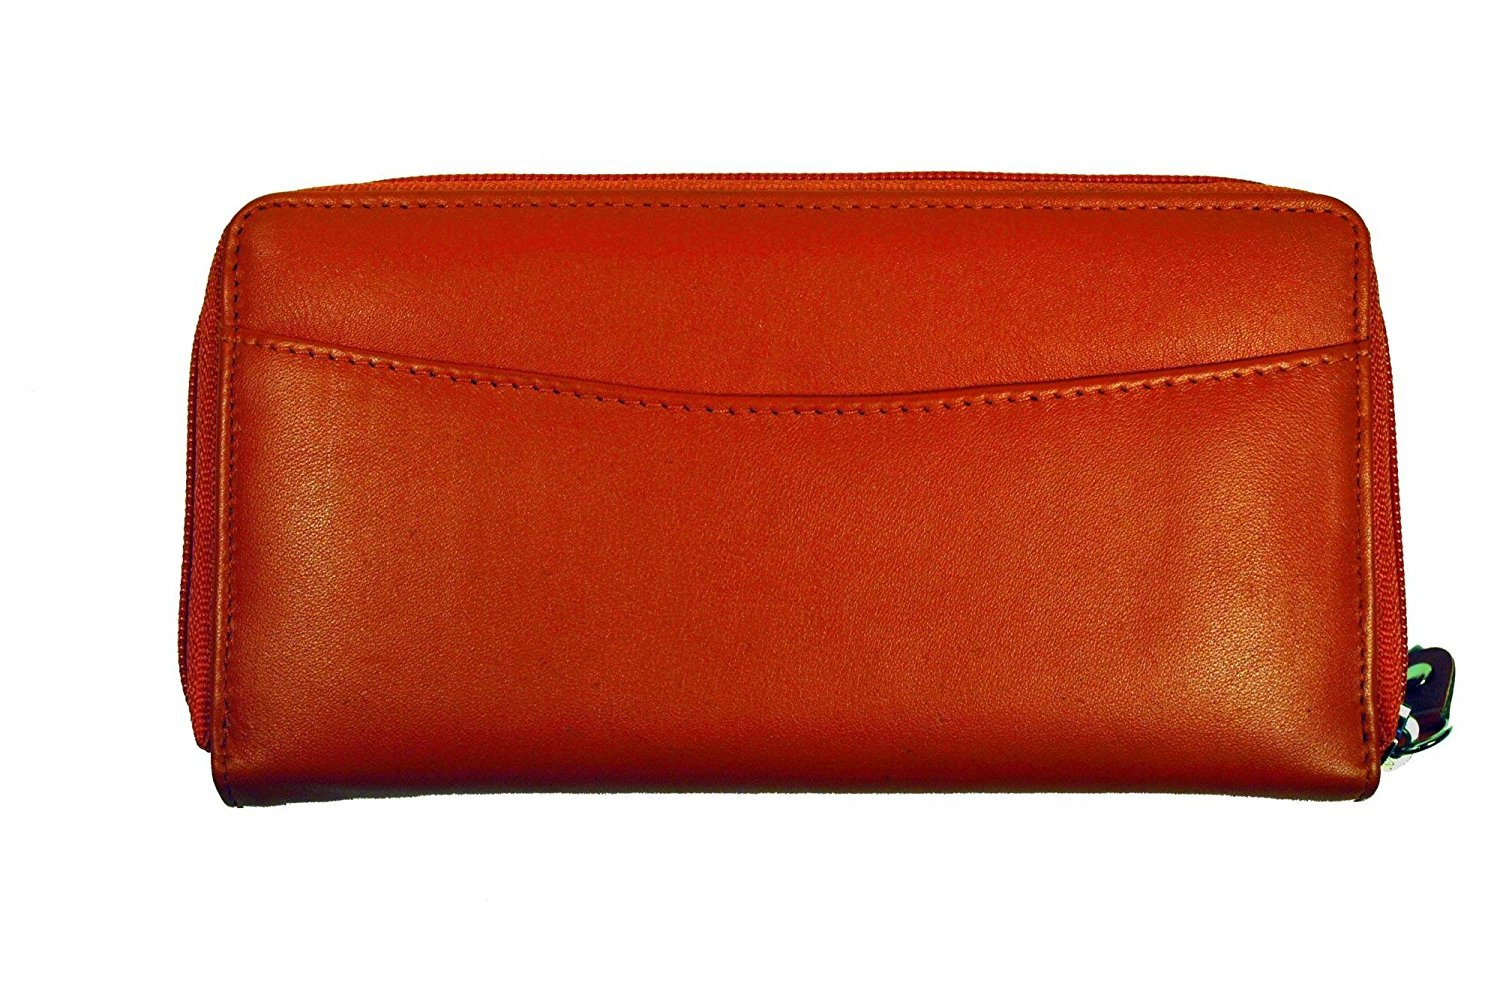 Budd Leather Calf Double Zip Around Credit Card Wallet With RFID - Orange